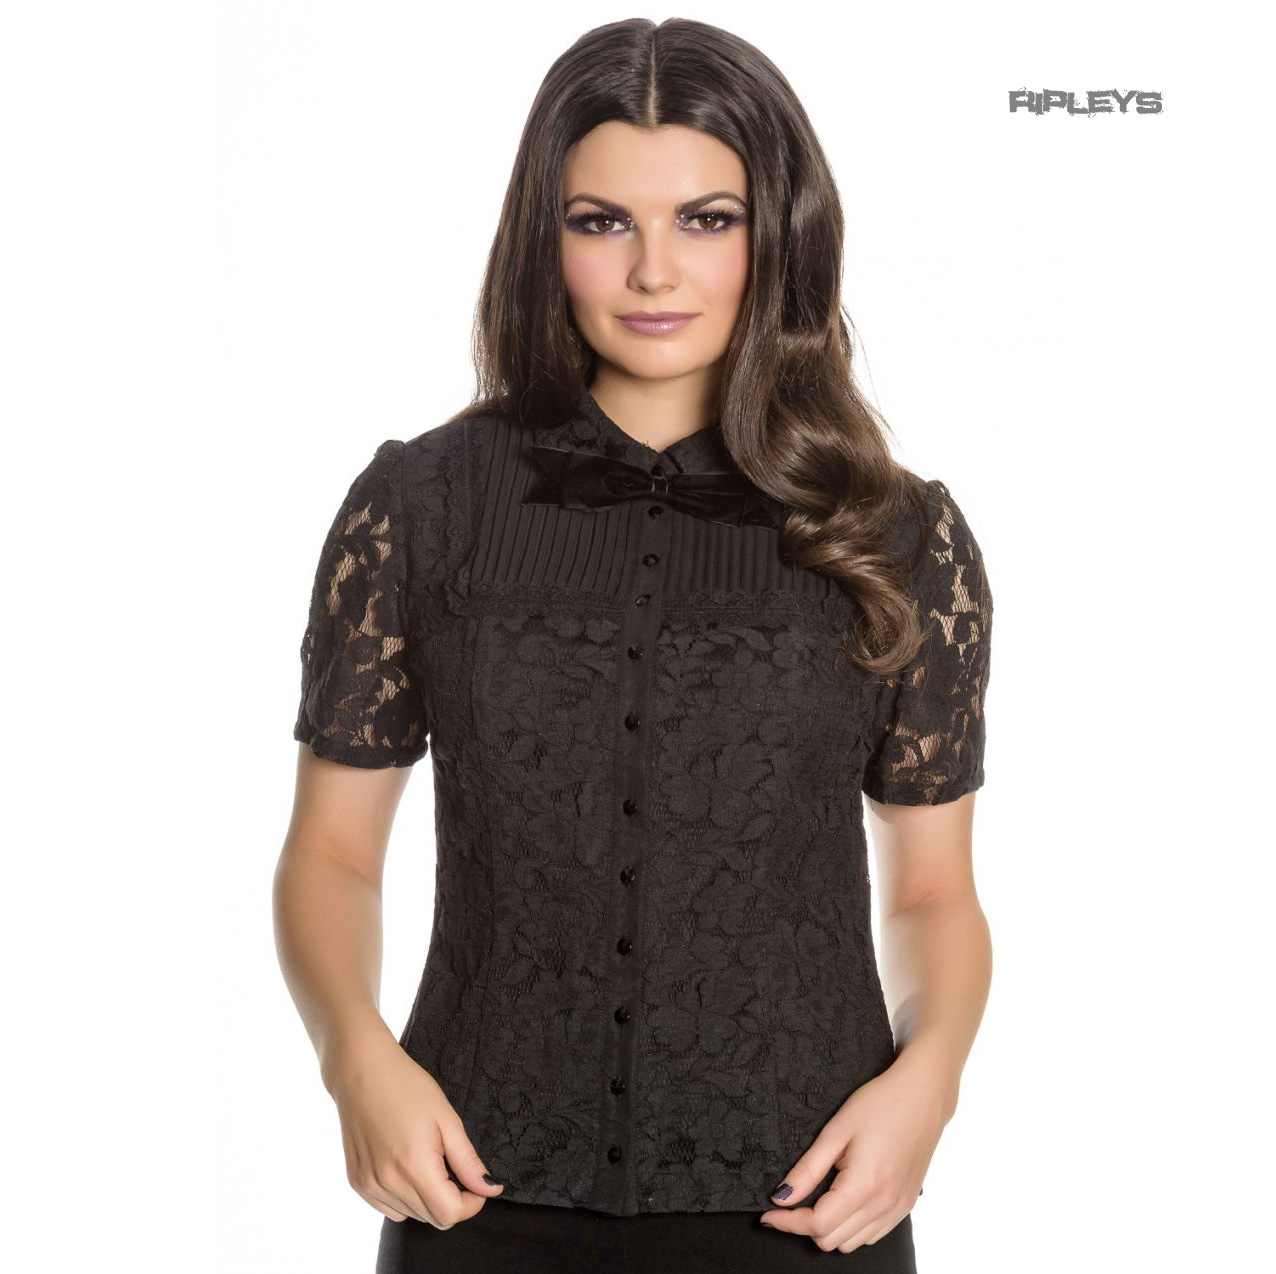 Hell-Bunny-Spin-Doctor-Vampire-Gothic-Shirt-Top-ROWENA-Lace-Blouse-All-Sizes Indexbild 6